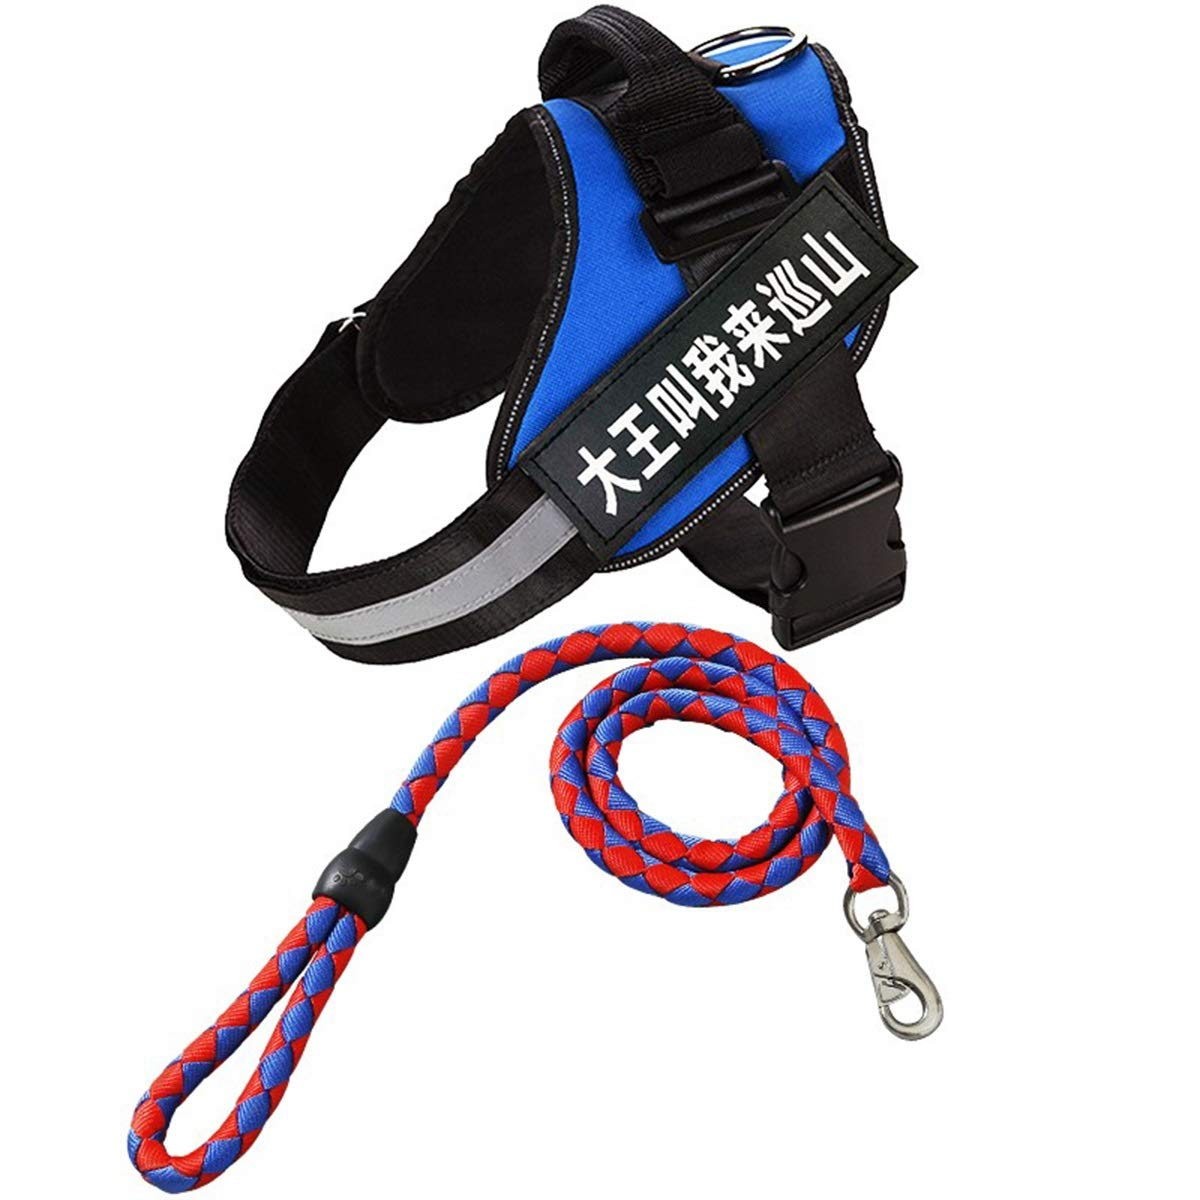 bluee XXL bluee XXL Dog Chest Strap with Traction Rope, Dog Chain, Medium Dog Large Dog, Hyena Rope, Anti-Rush Chest Strap, wear-Resistant Traction Rope, 3 colors Optional (color   bluee, Size   XXL)